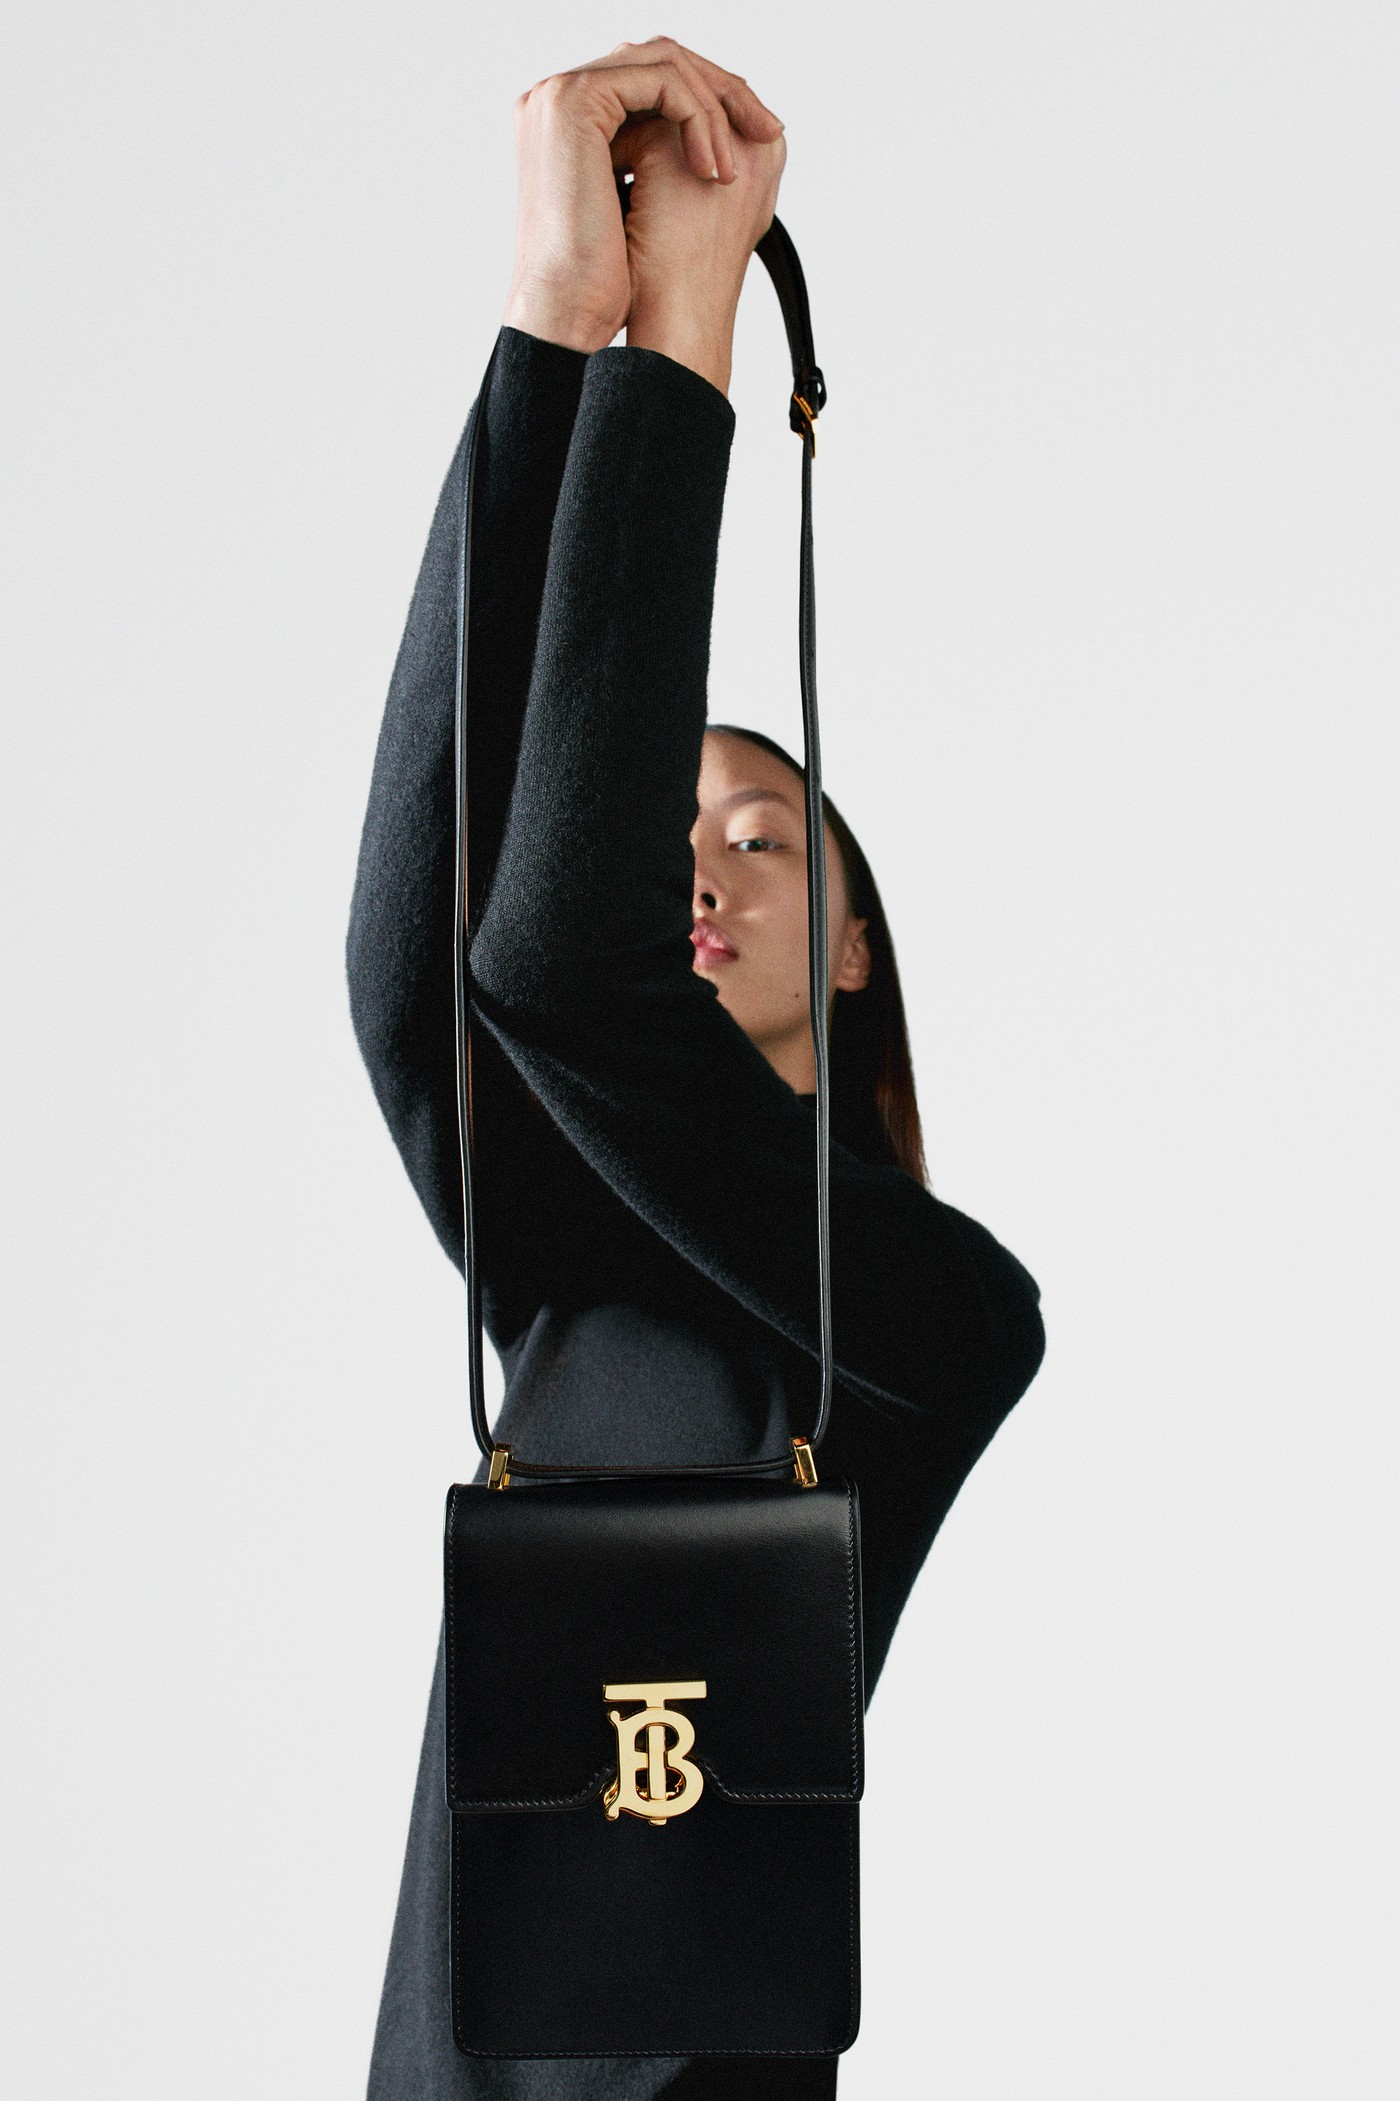 burberry b series robin bag release campaign